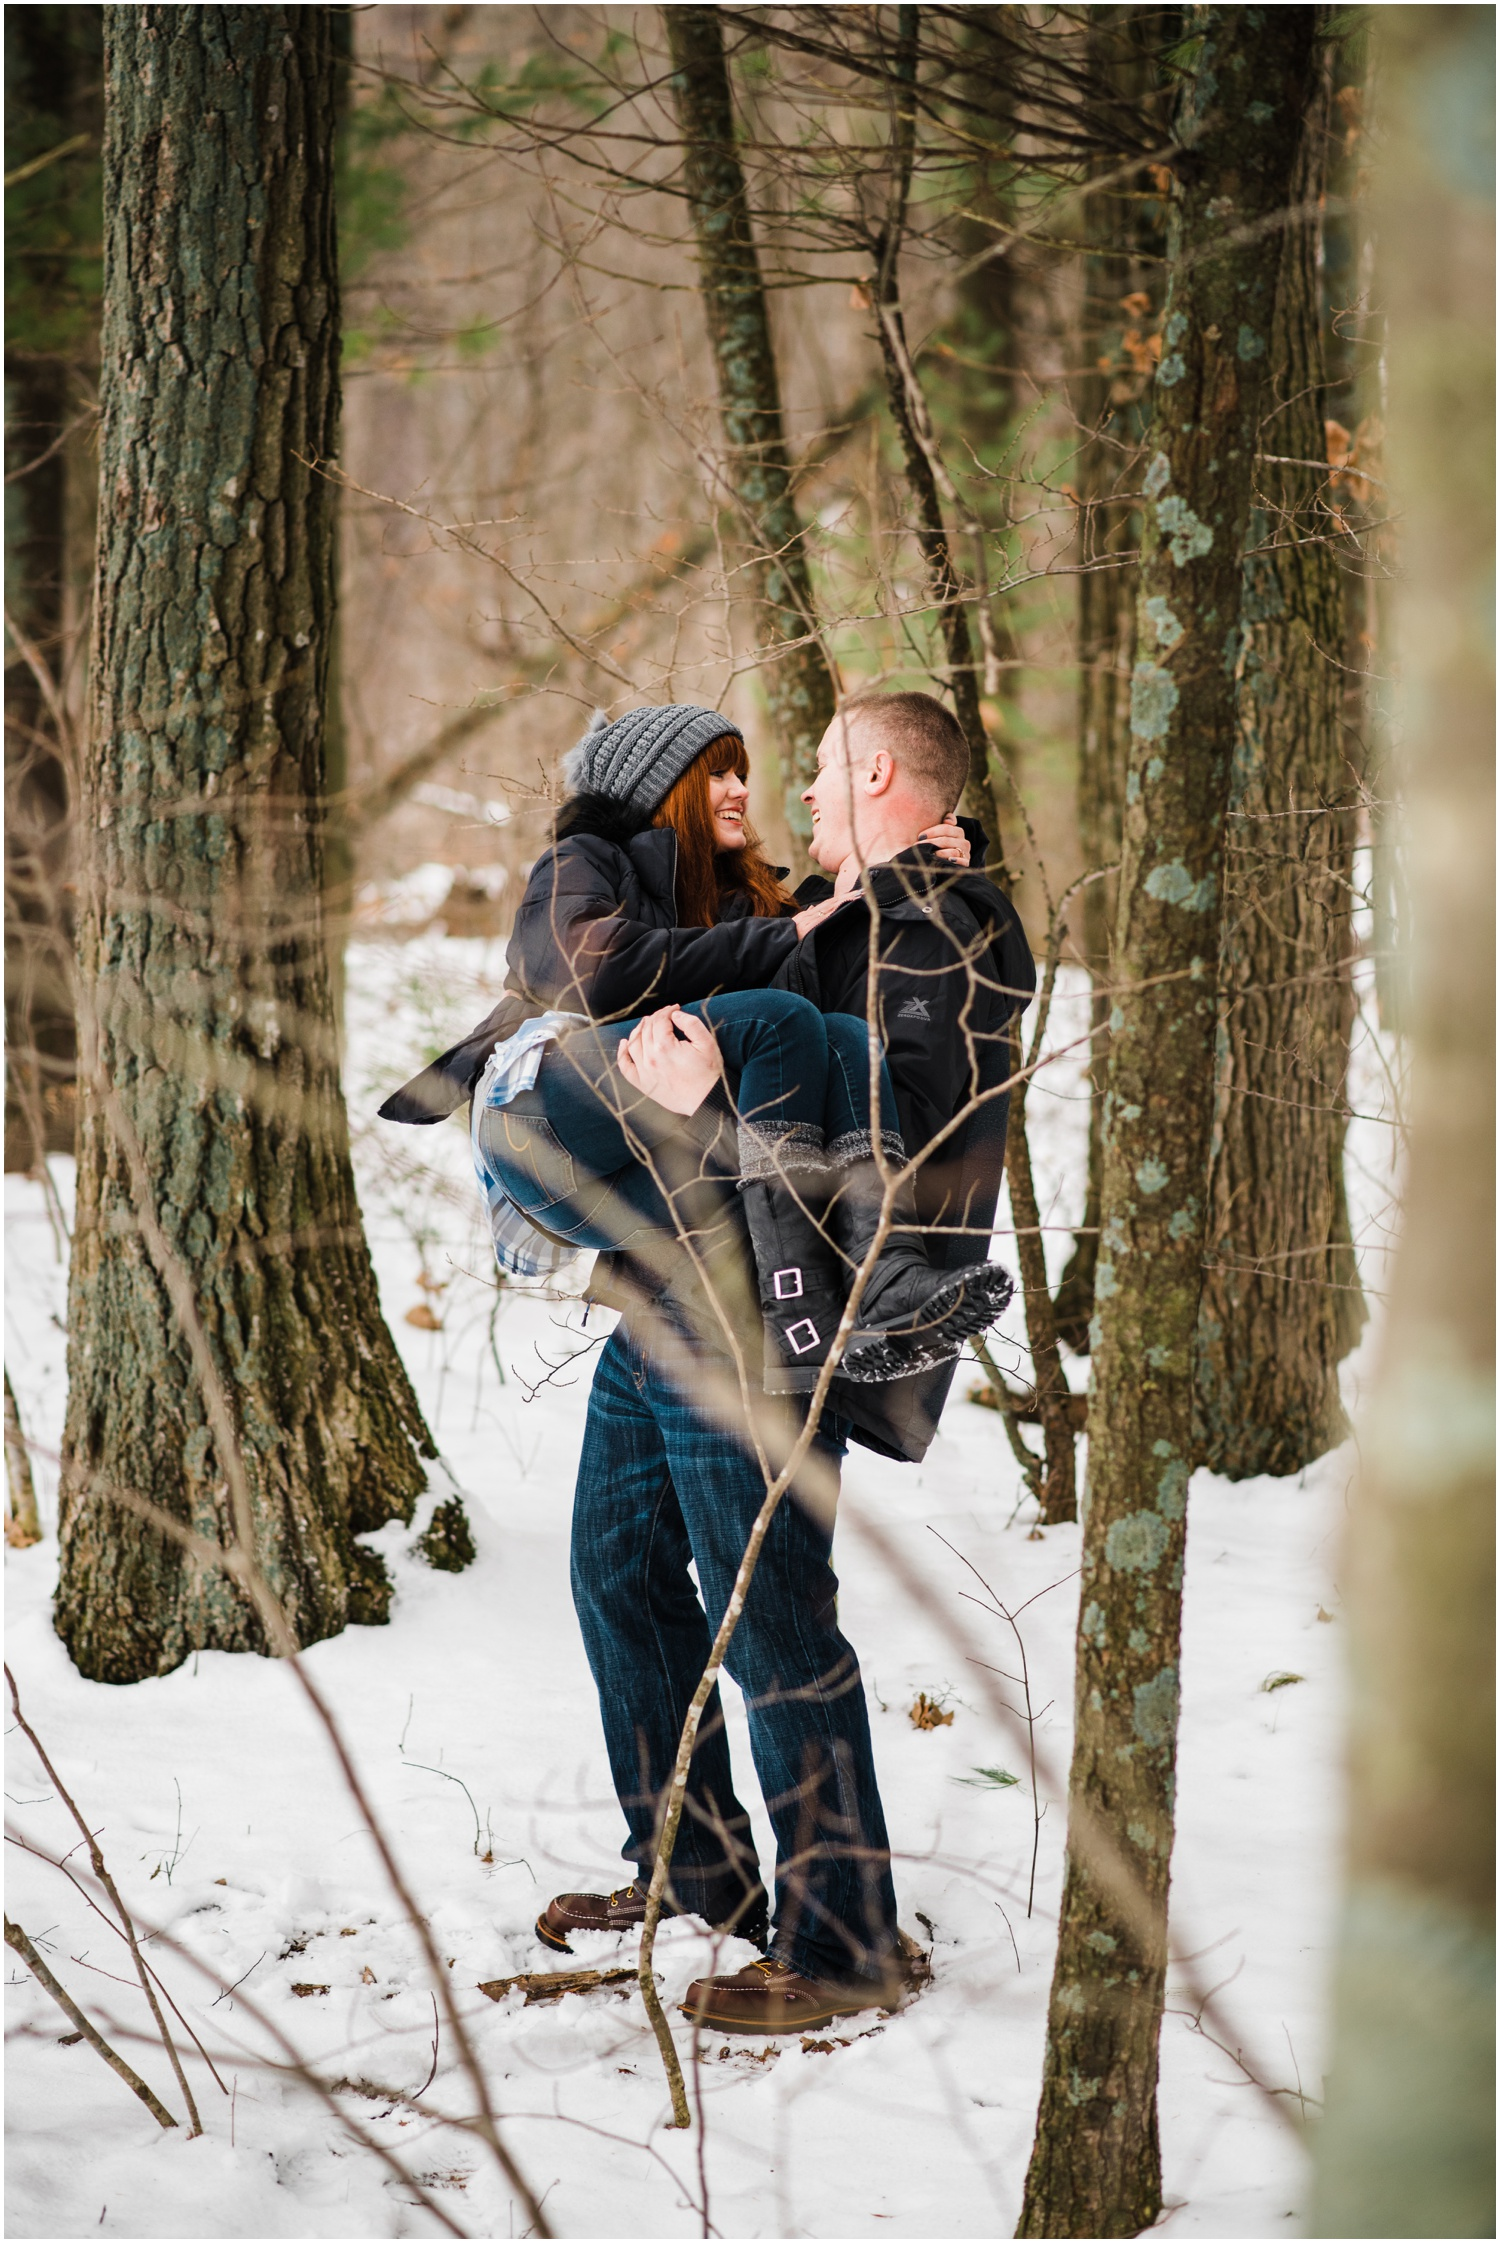 Devils-Lake-Baraboo-Wisconsin-Engagement-Photographer-Lindsey-And-Cody-Engaged-167.jpg